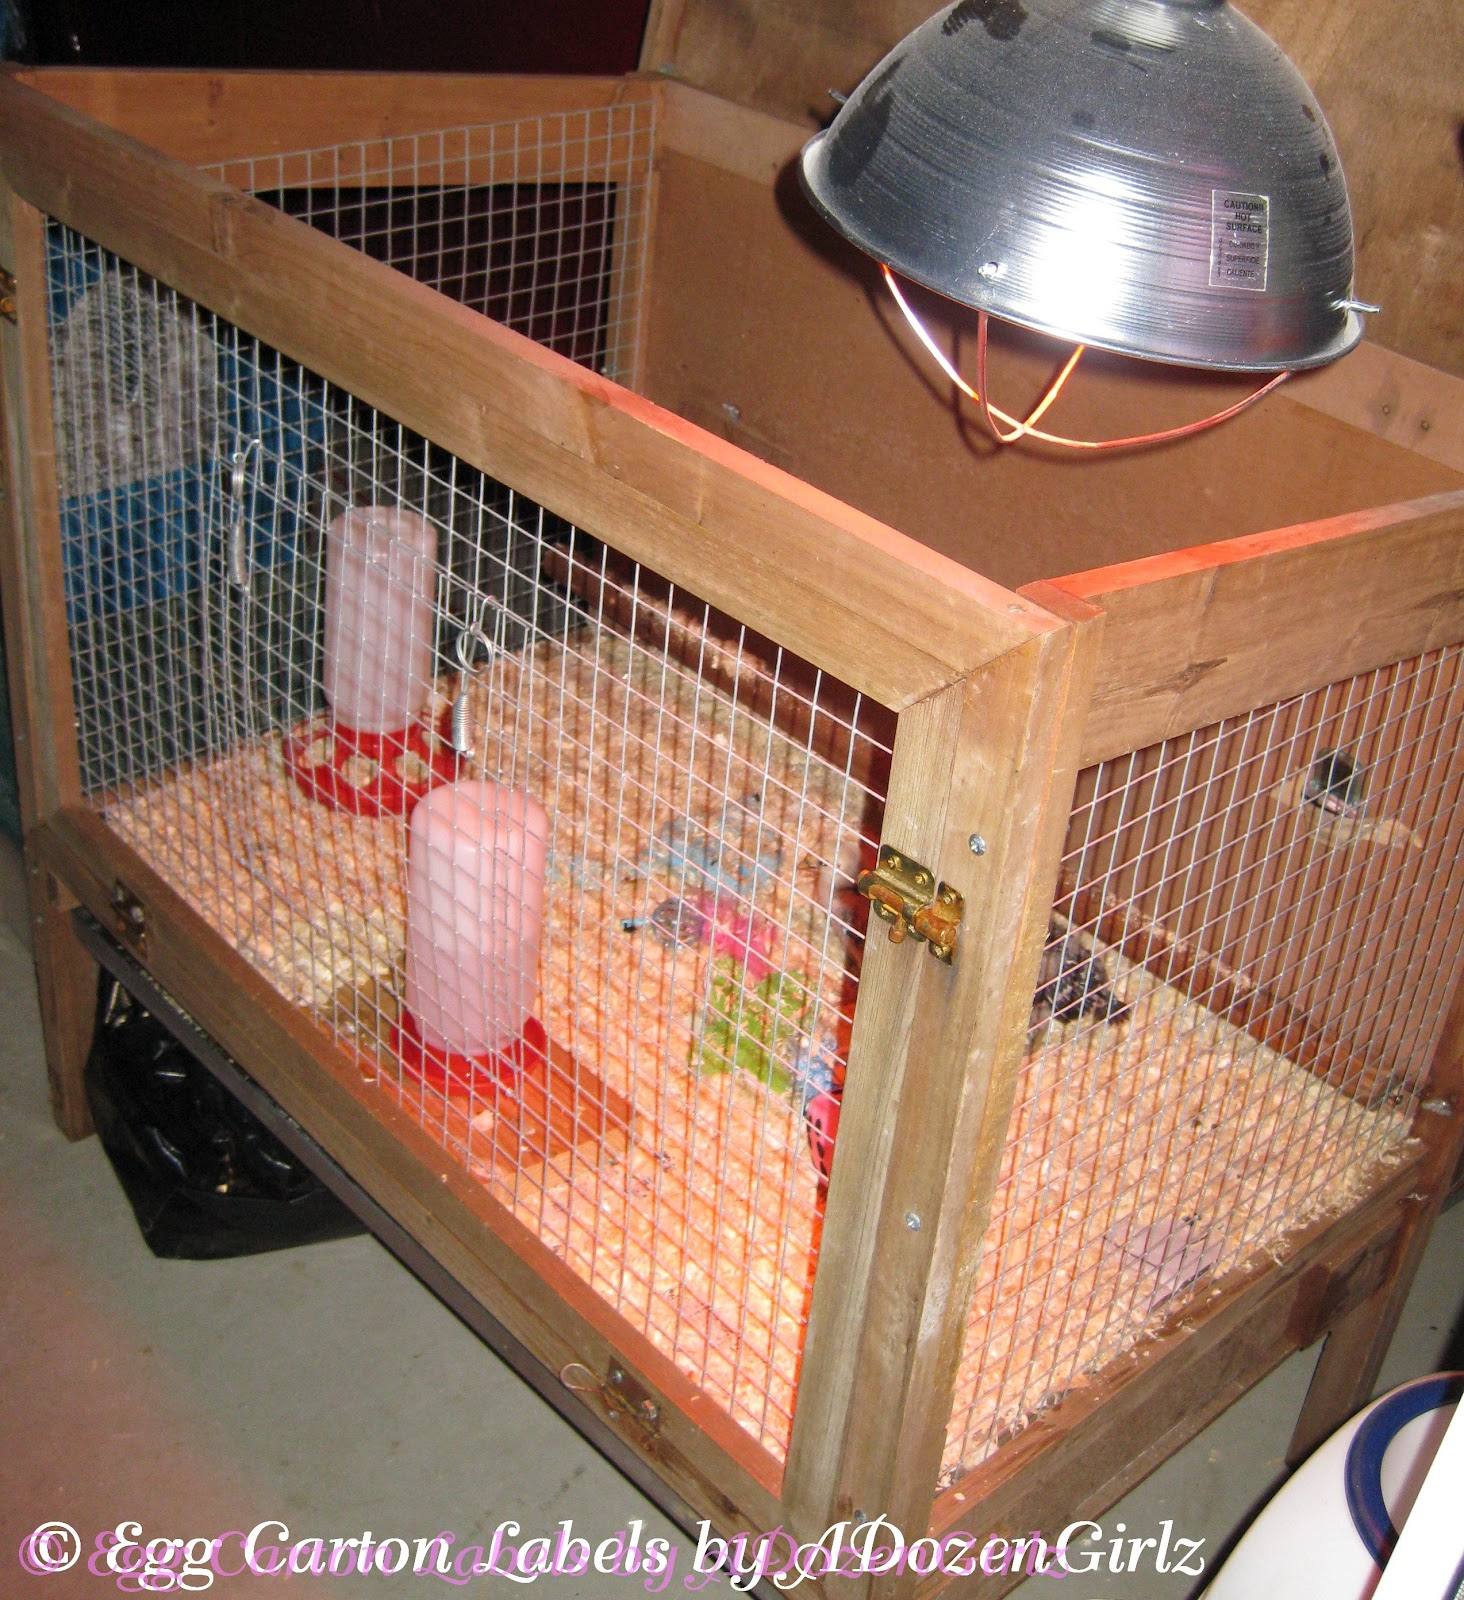 The Chicken Chick: The Dangers of Brooder Heat Lamps & a